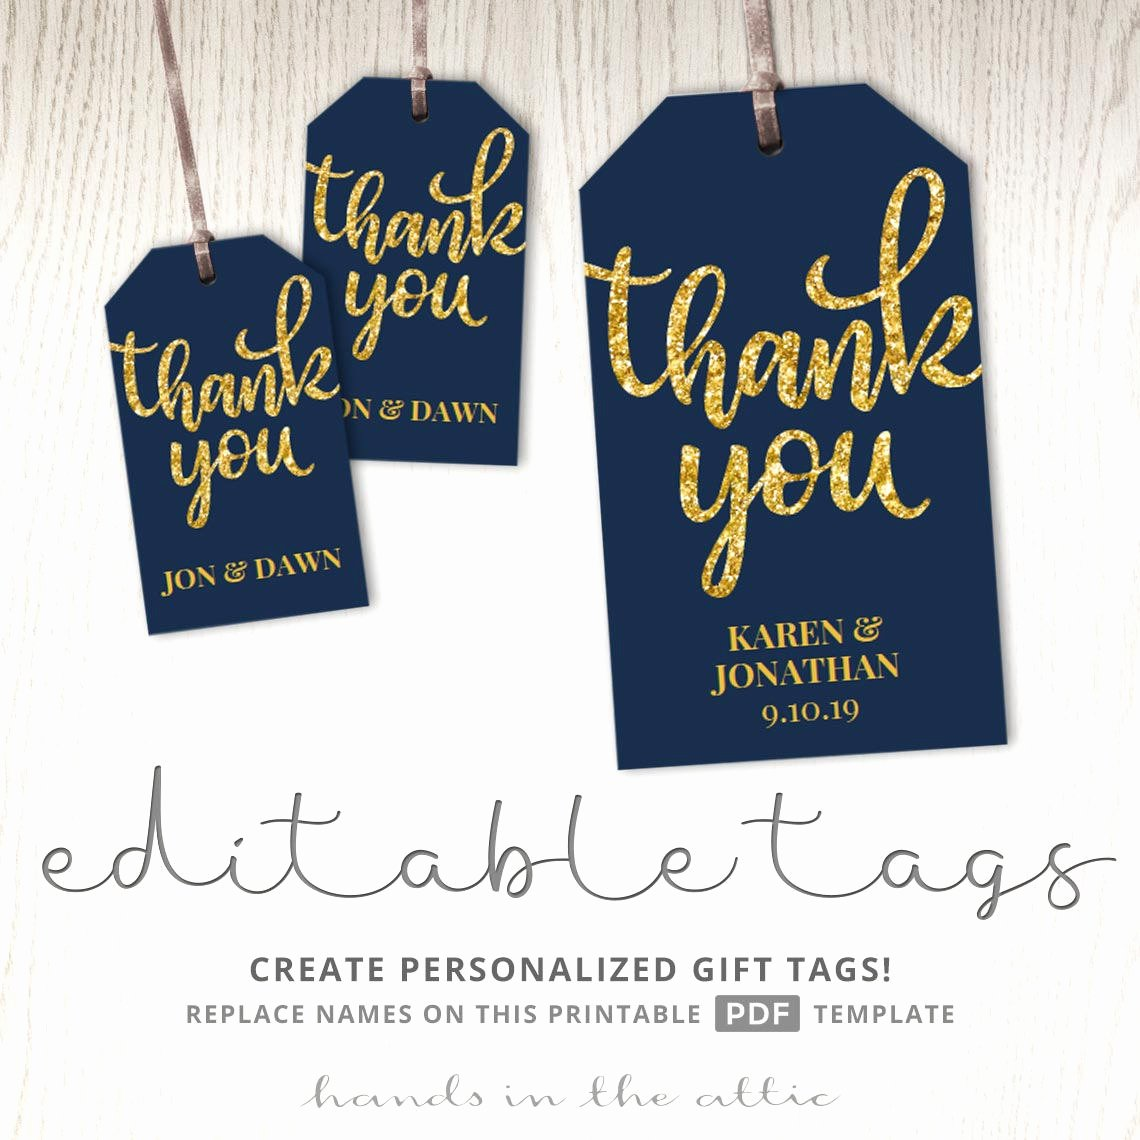 Wedding Favor Tag Template Fresh Thank You Tags T Labels Navy and Gold Wedding Favor